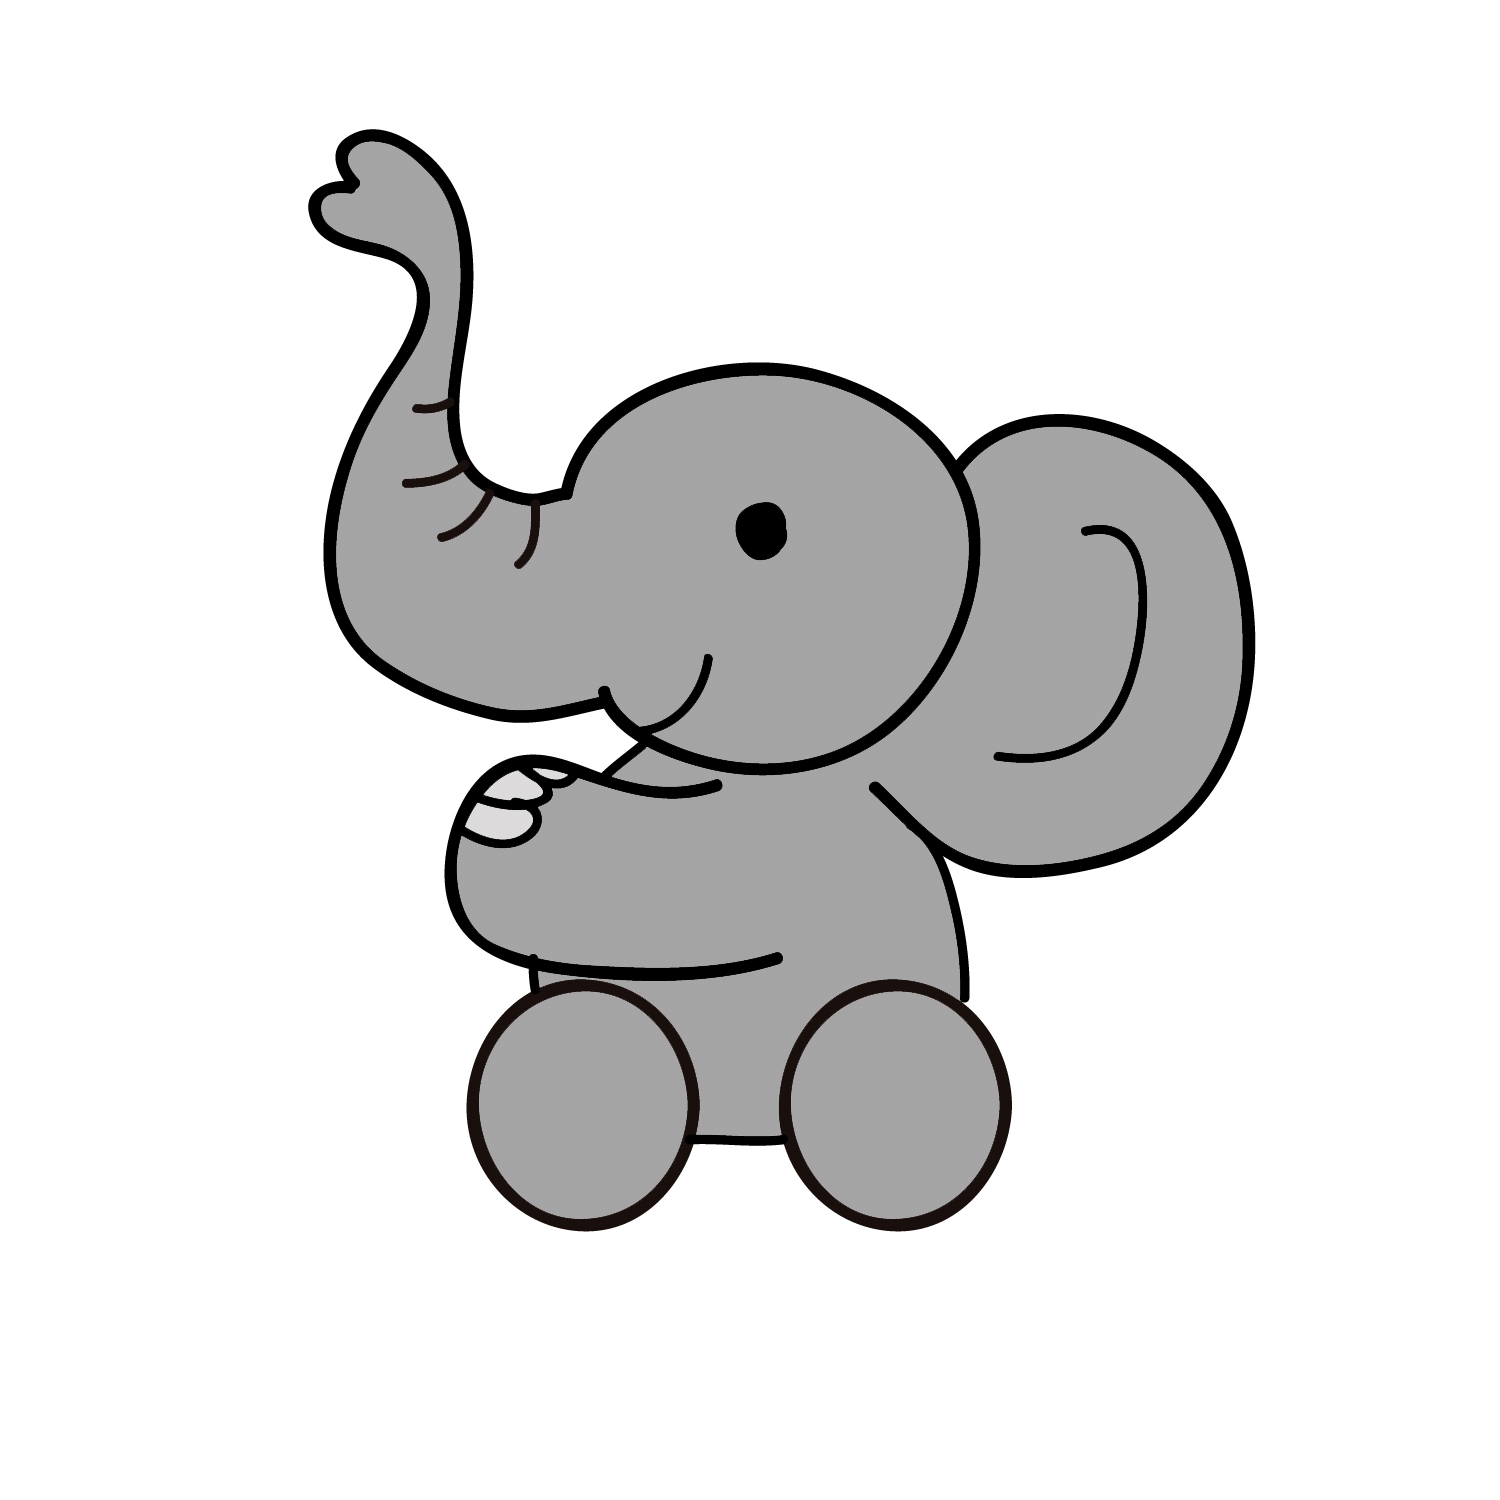 Clipart elephant wallpaper. Free cartoons pictures download